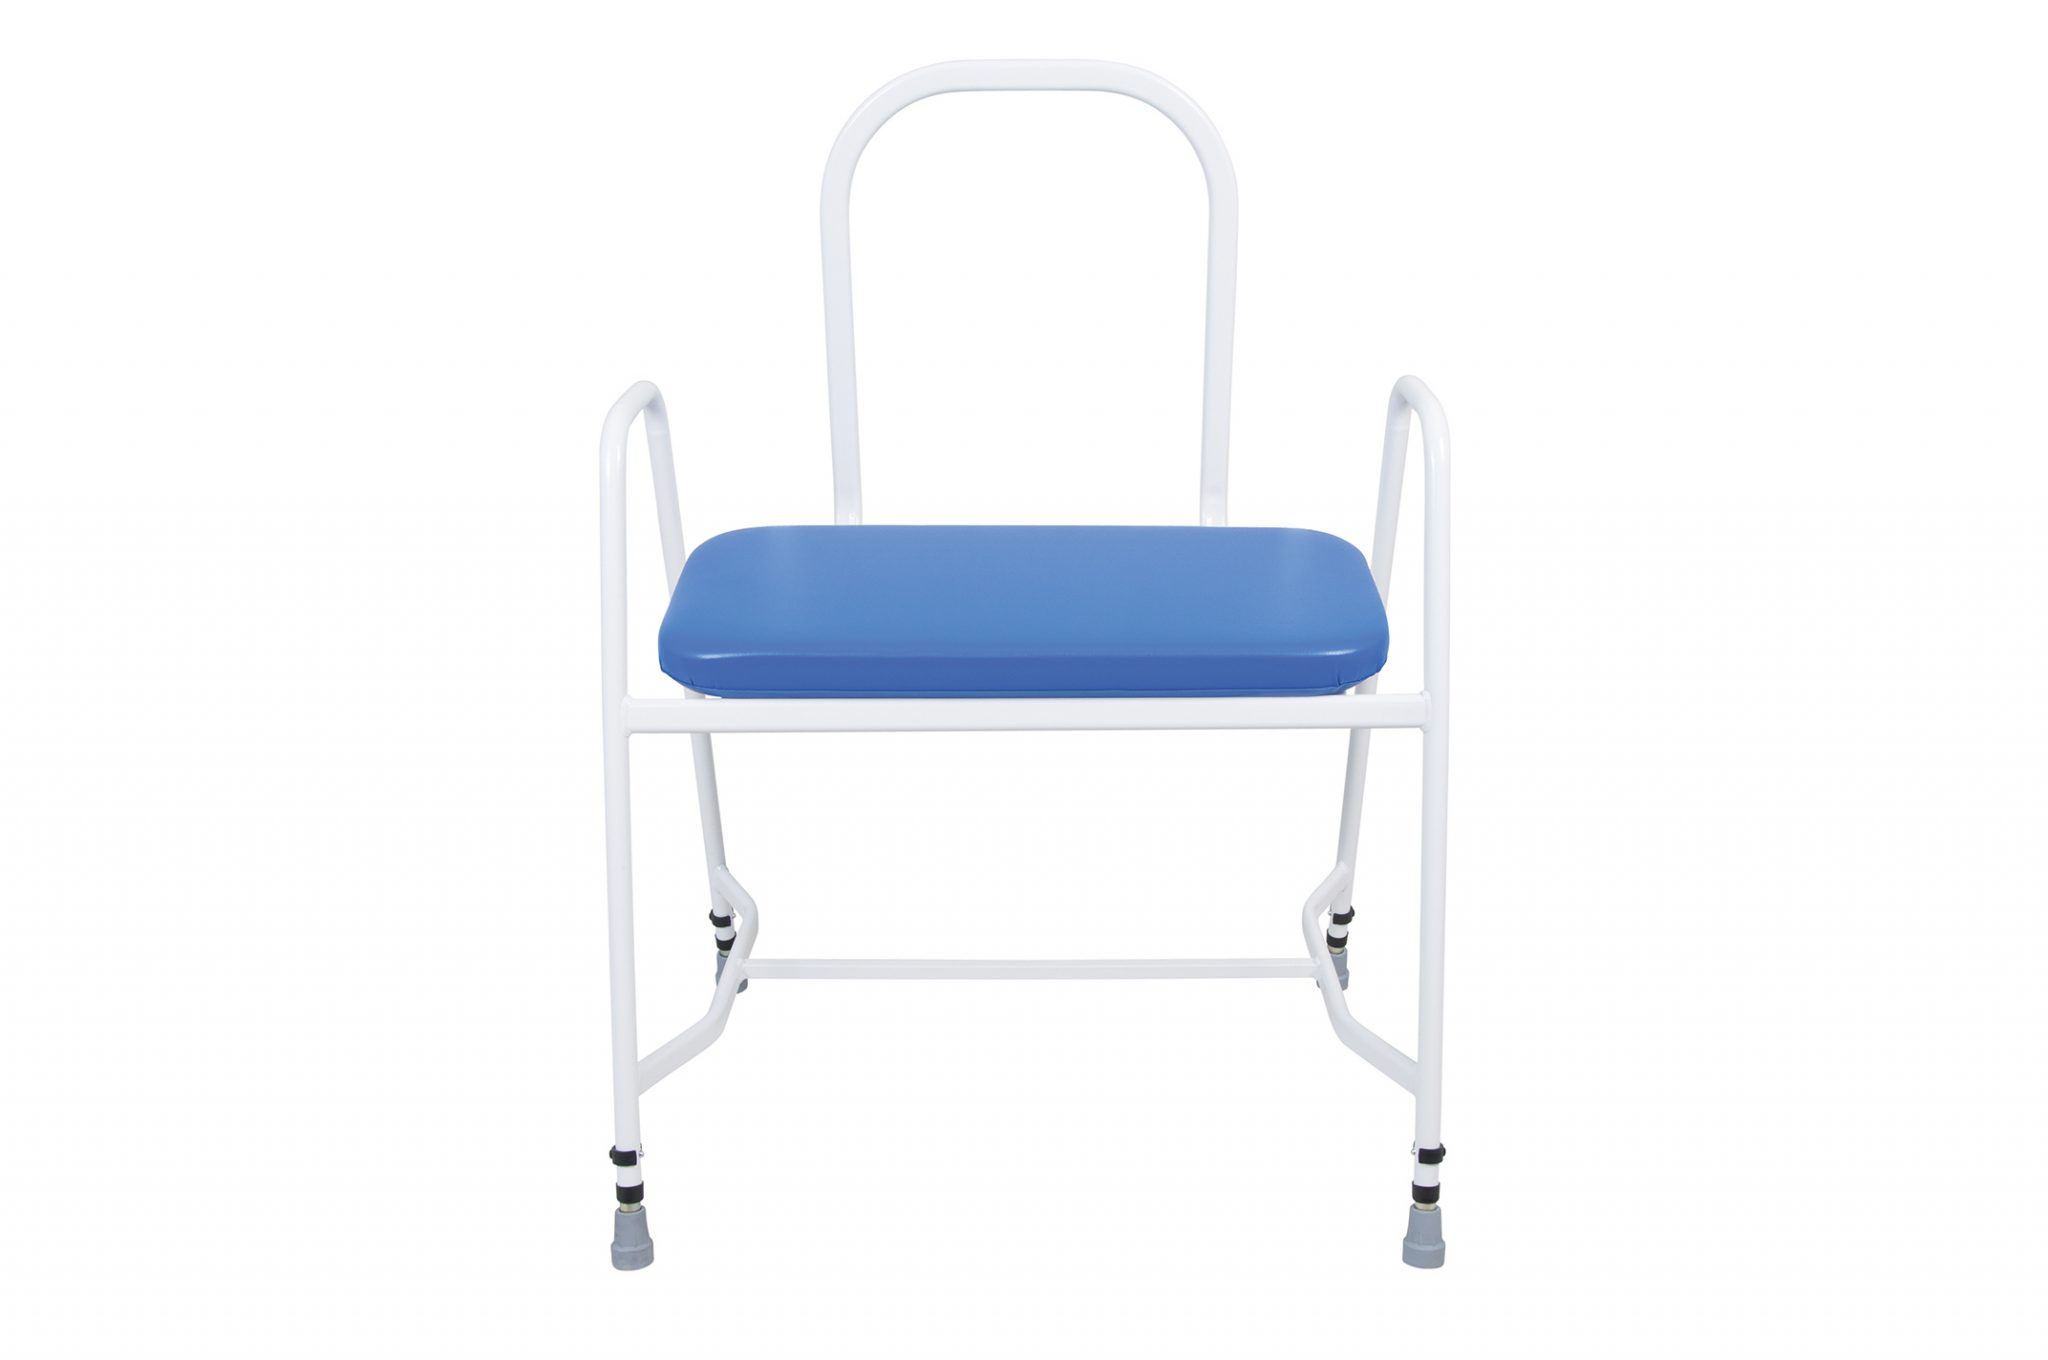 Pleasing X160 Bariatric Perching Stool With Steel Arms Back Machost Co Dining Chair Design Ideas Machostcouk